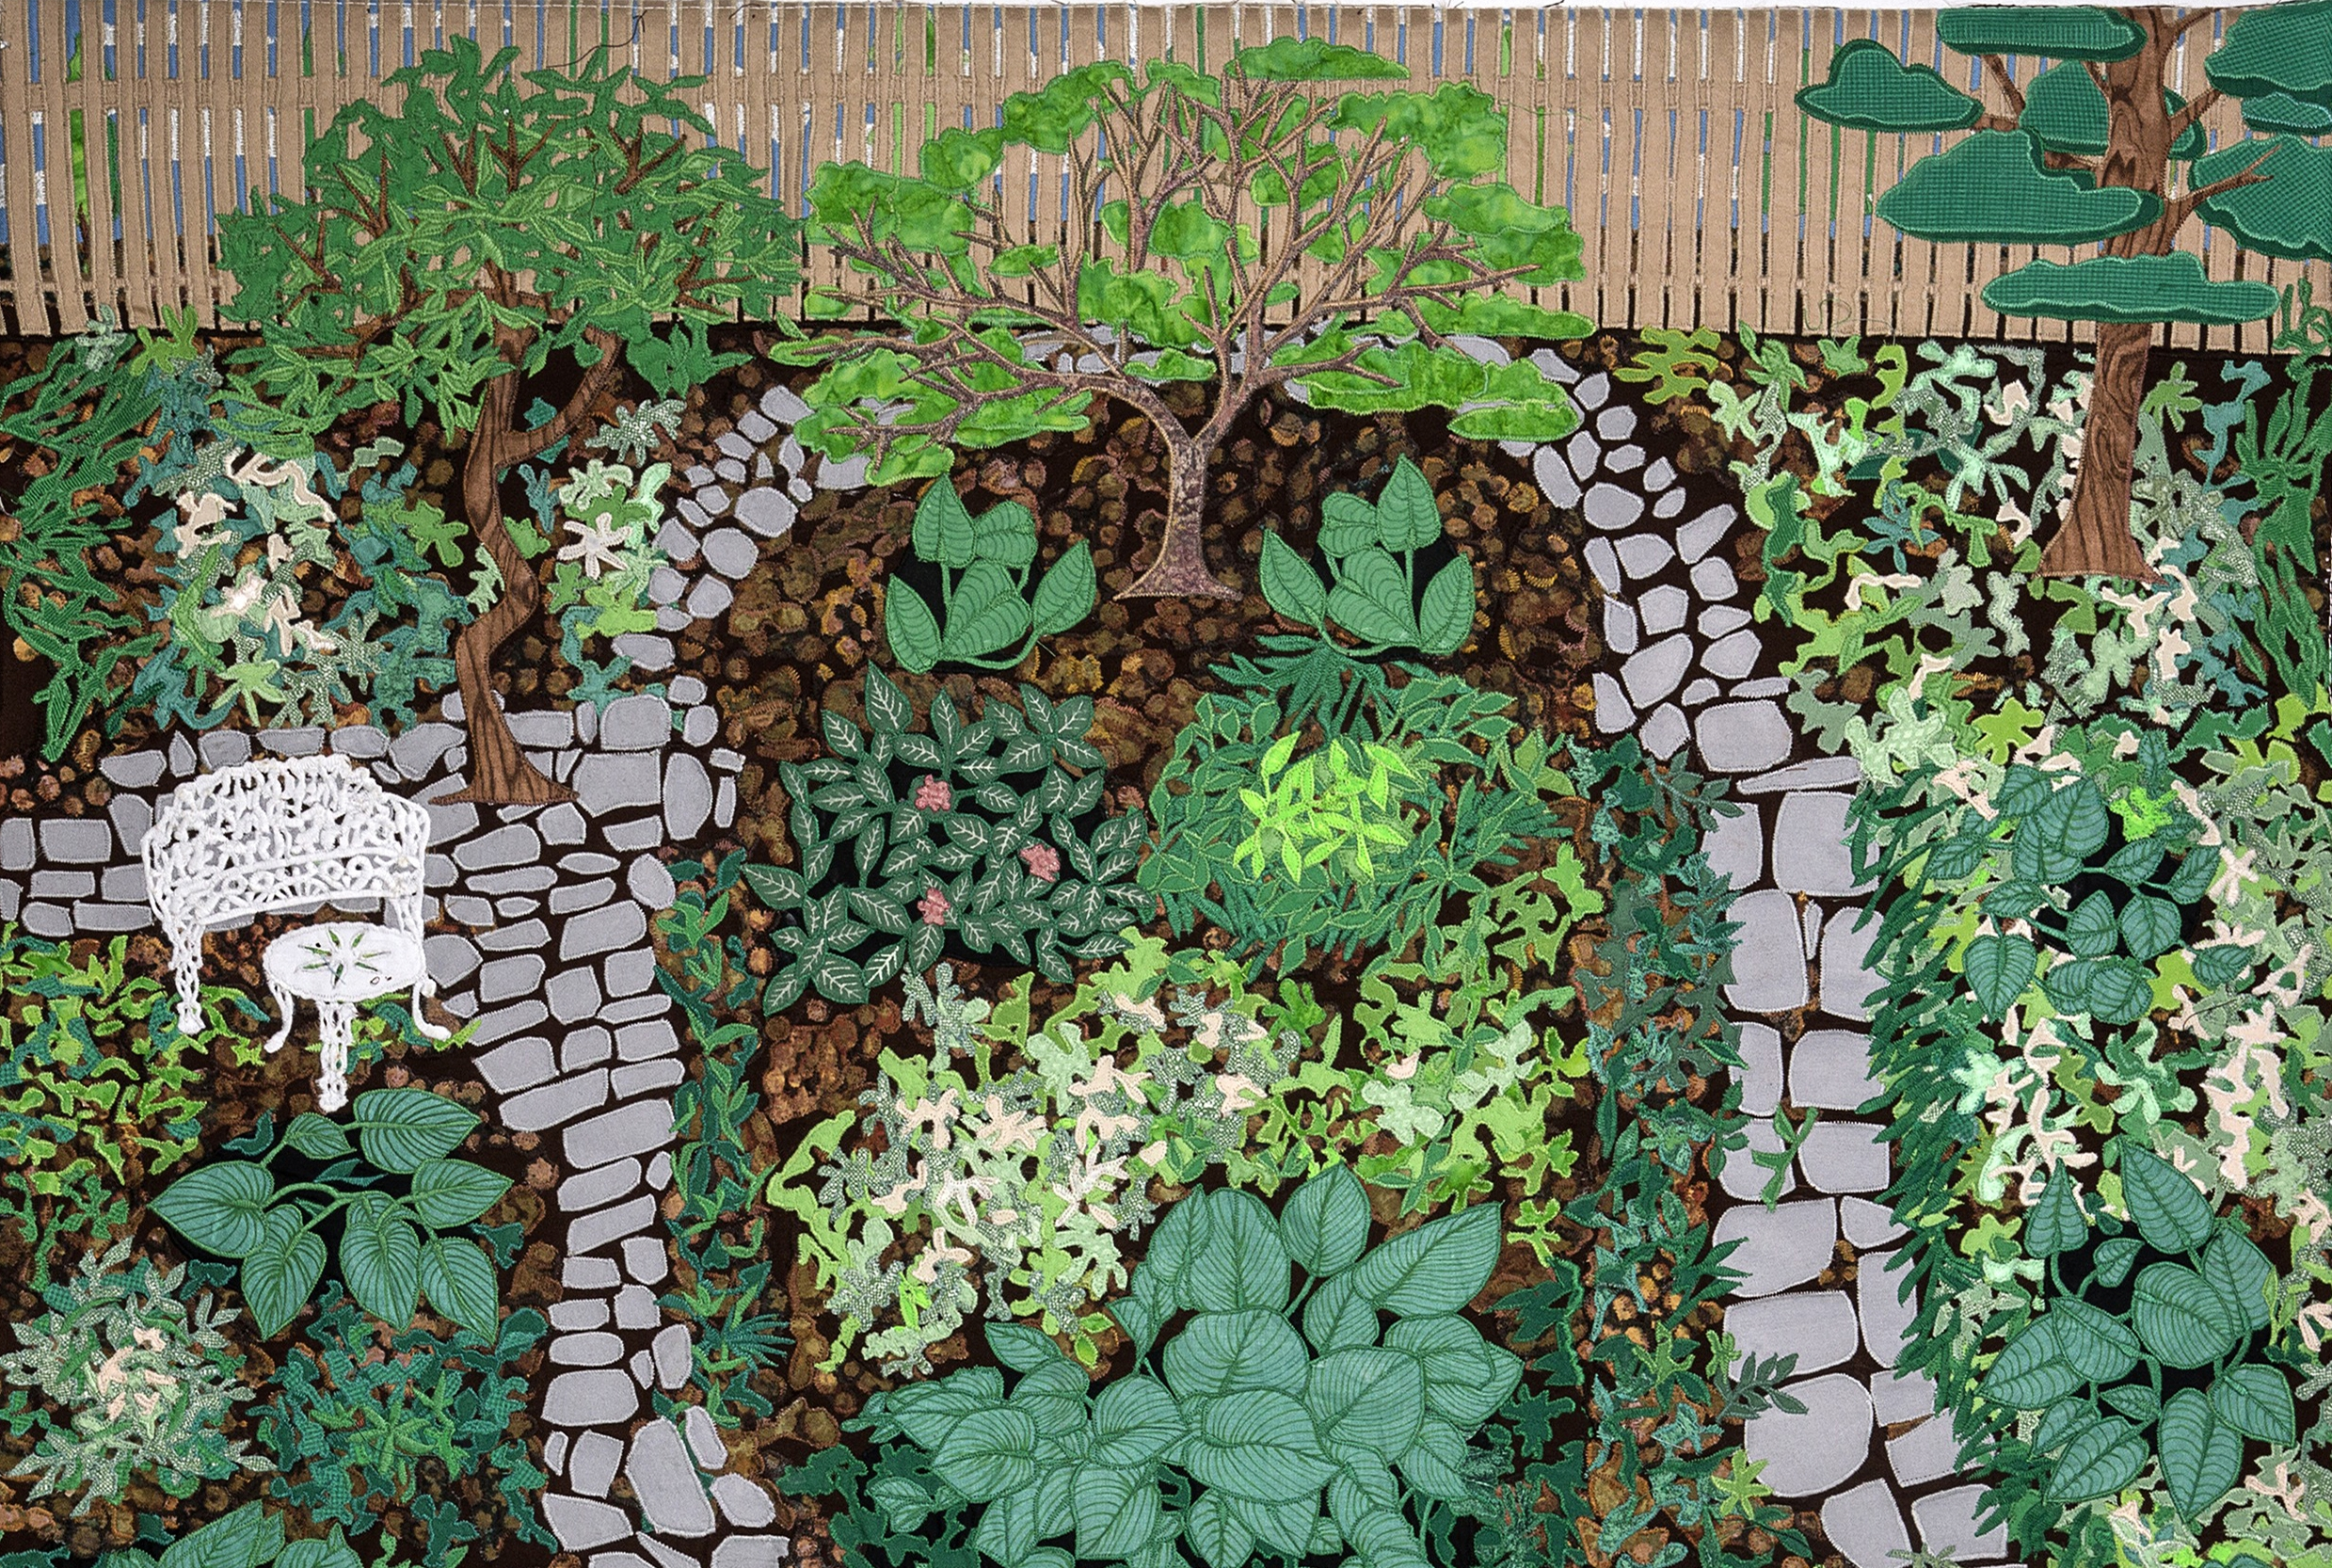 """Margaret Cusack, """"Behold the Hostas in Our Backyard"""", 36""""x36'"""